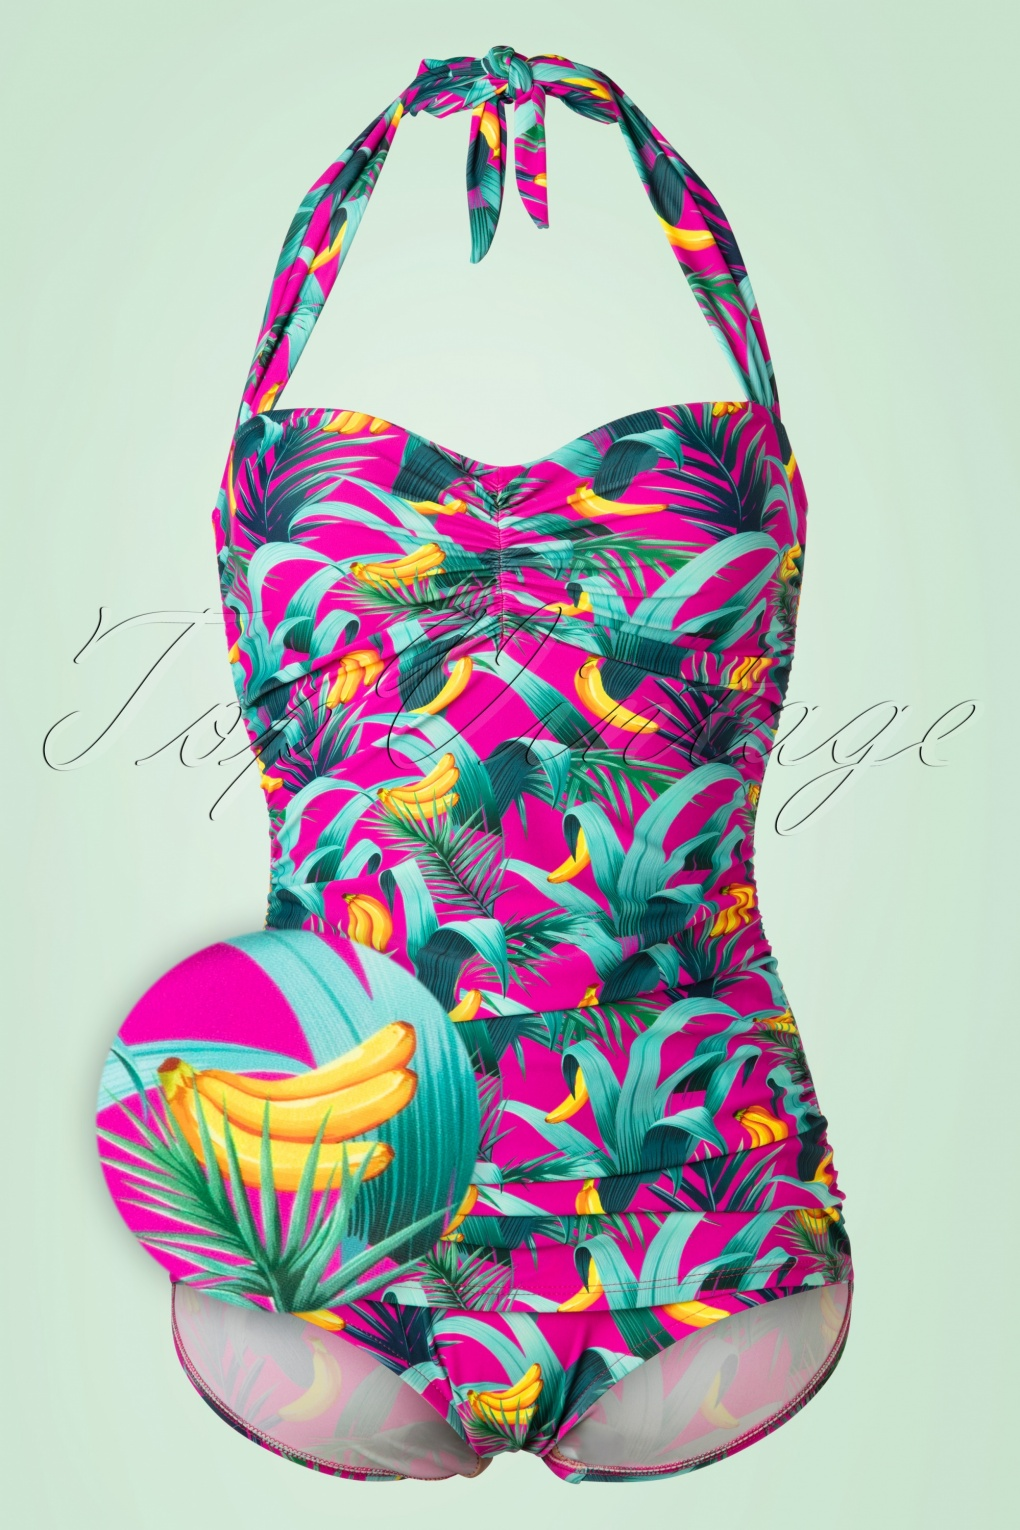 Vintage Bathing Suits | Retro Swimwear | Vintage Swimsuits 50s Chiquita Frock One Piece Swimsuit in Magenta £92.05 AT vintagedancer.com